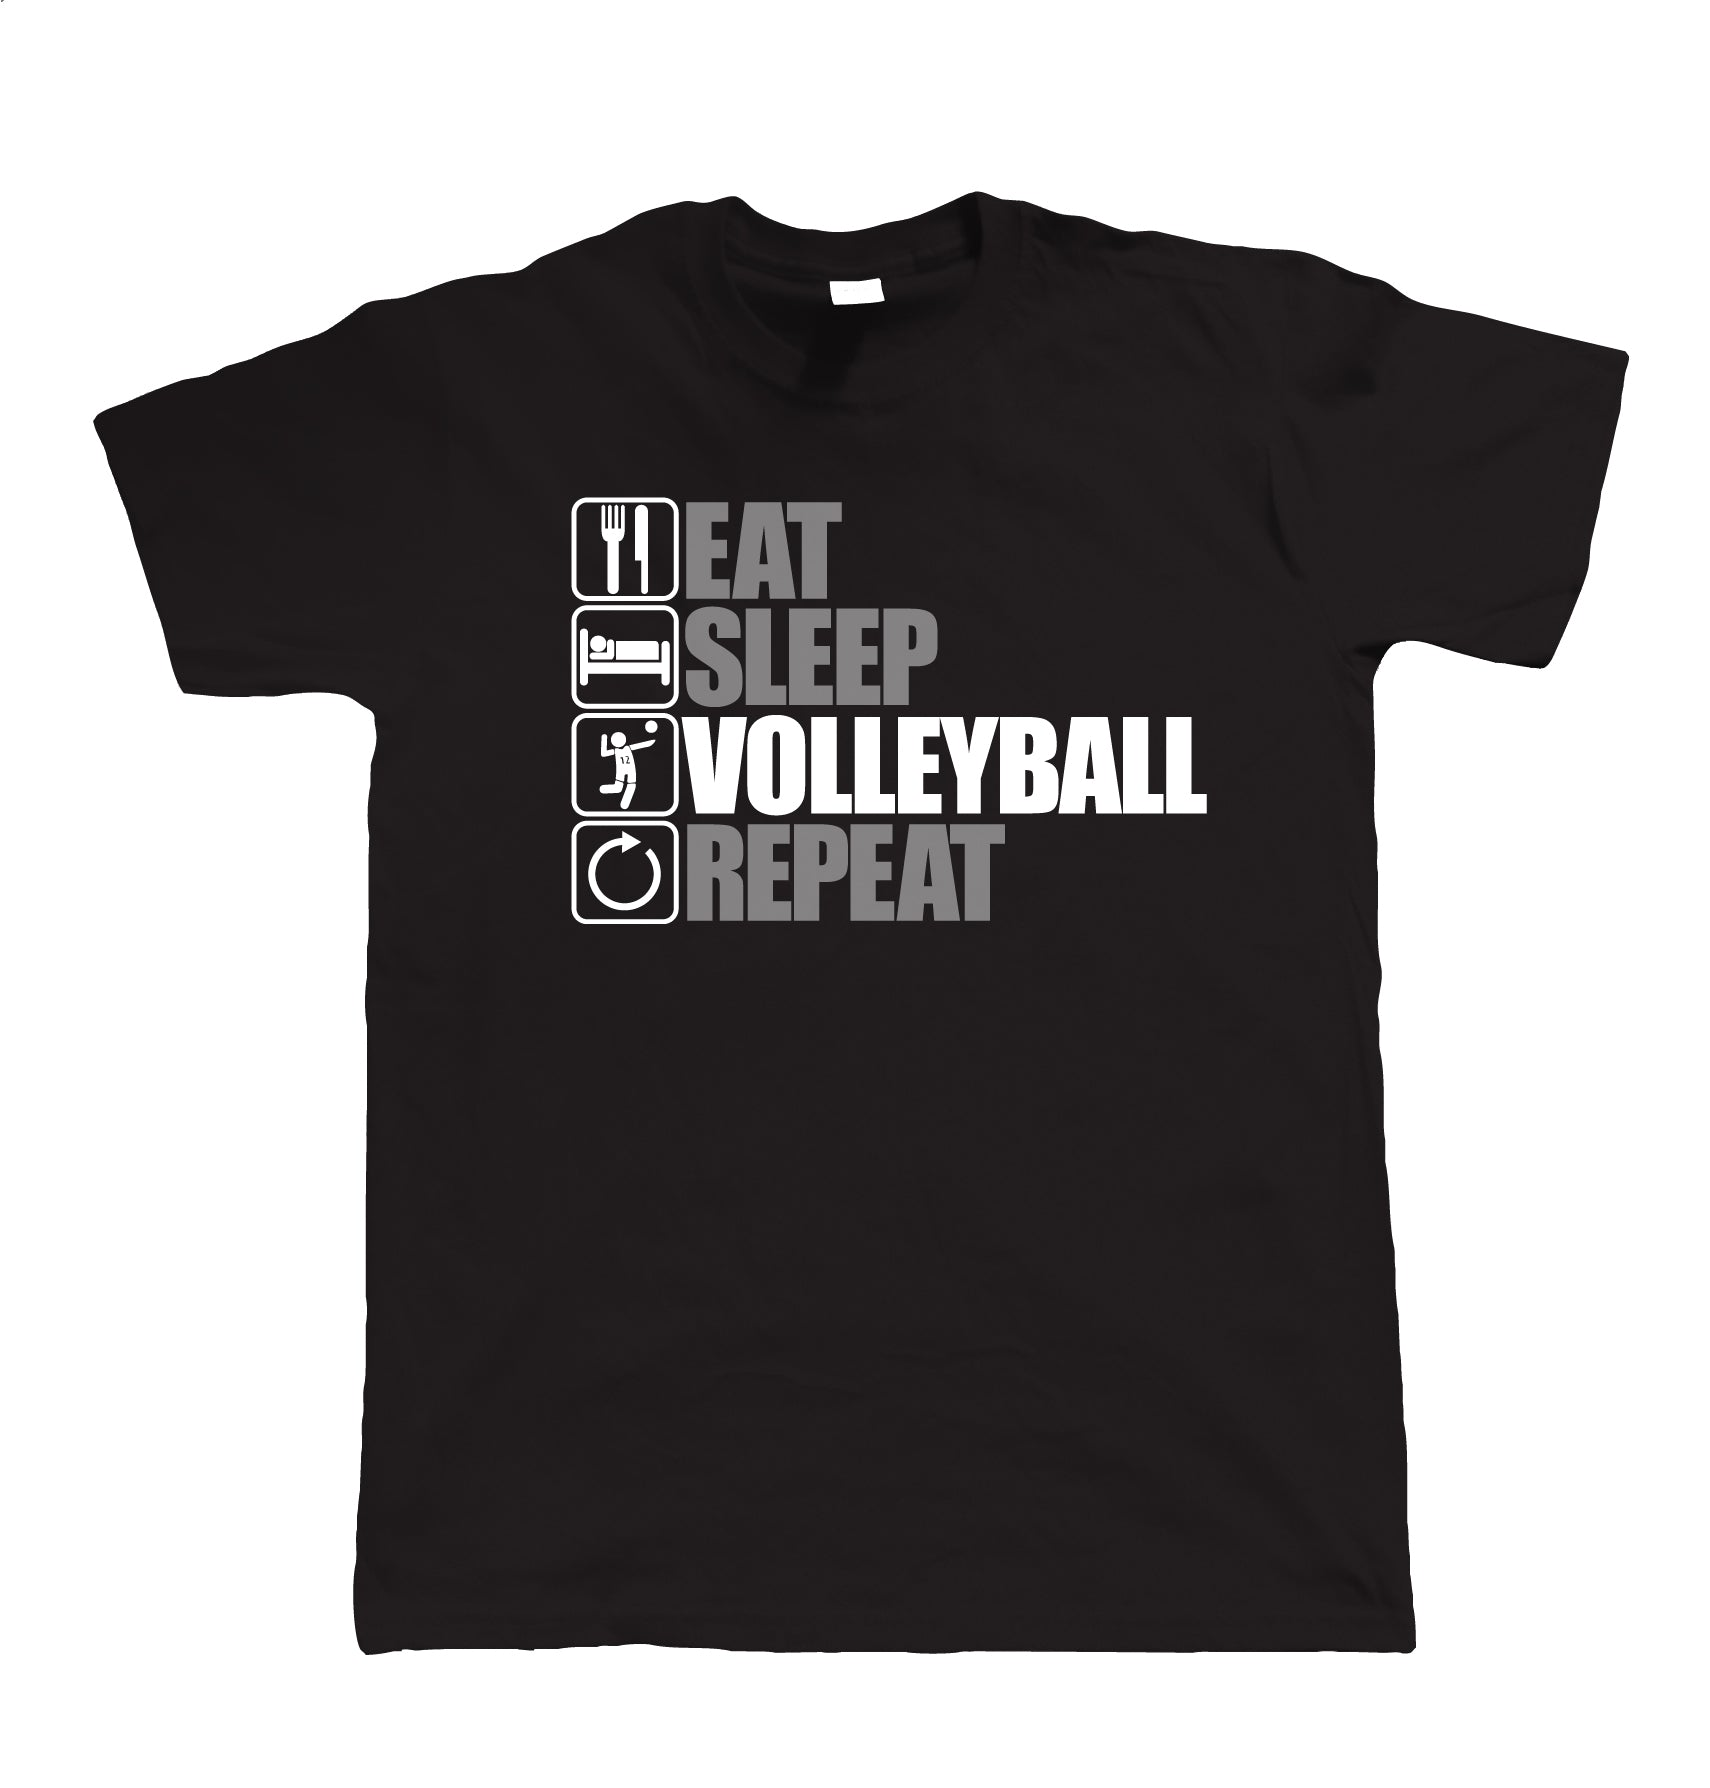 Eat Sleep Volleyball Repeat, Unisex T Shirt